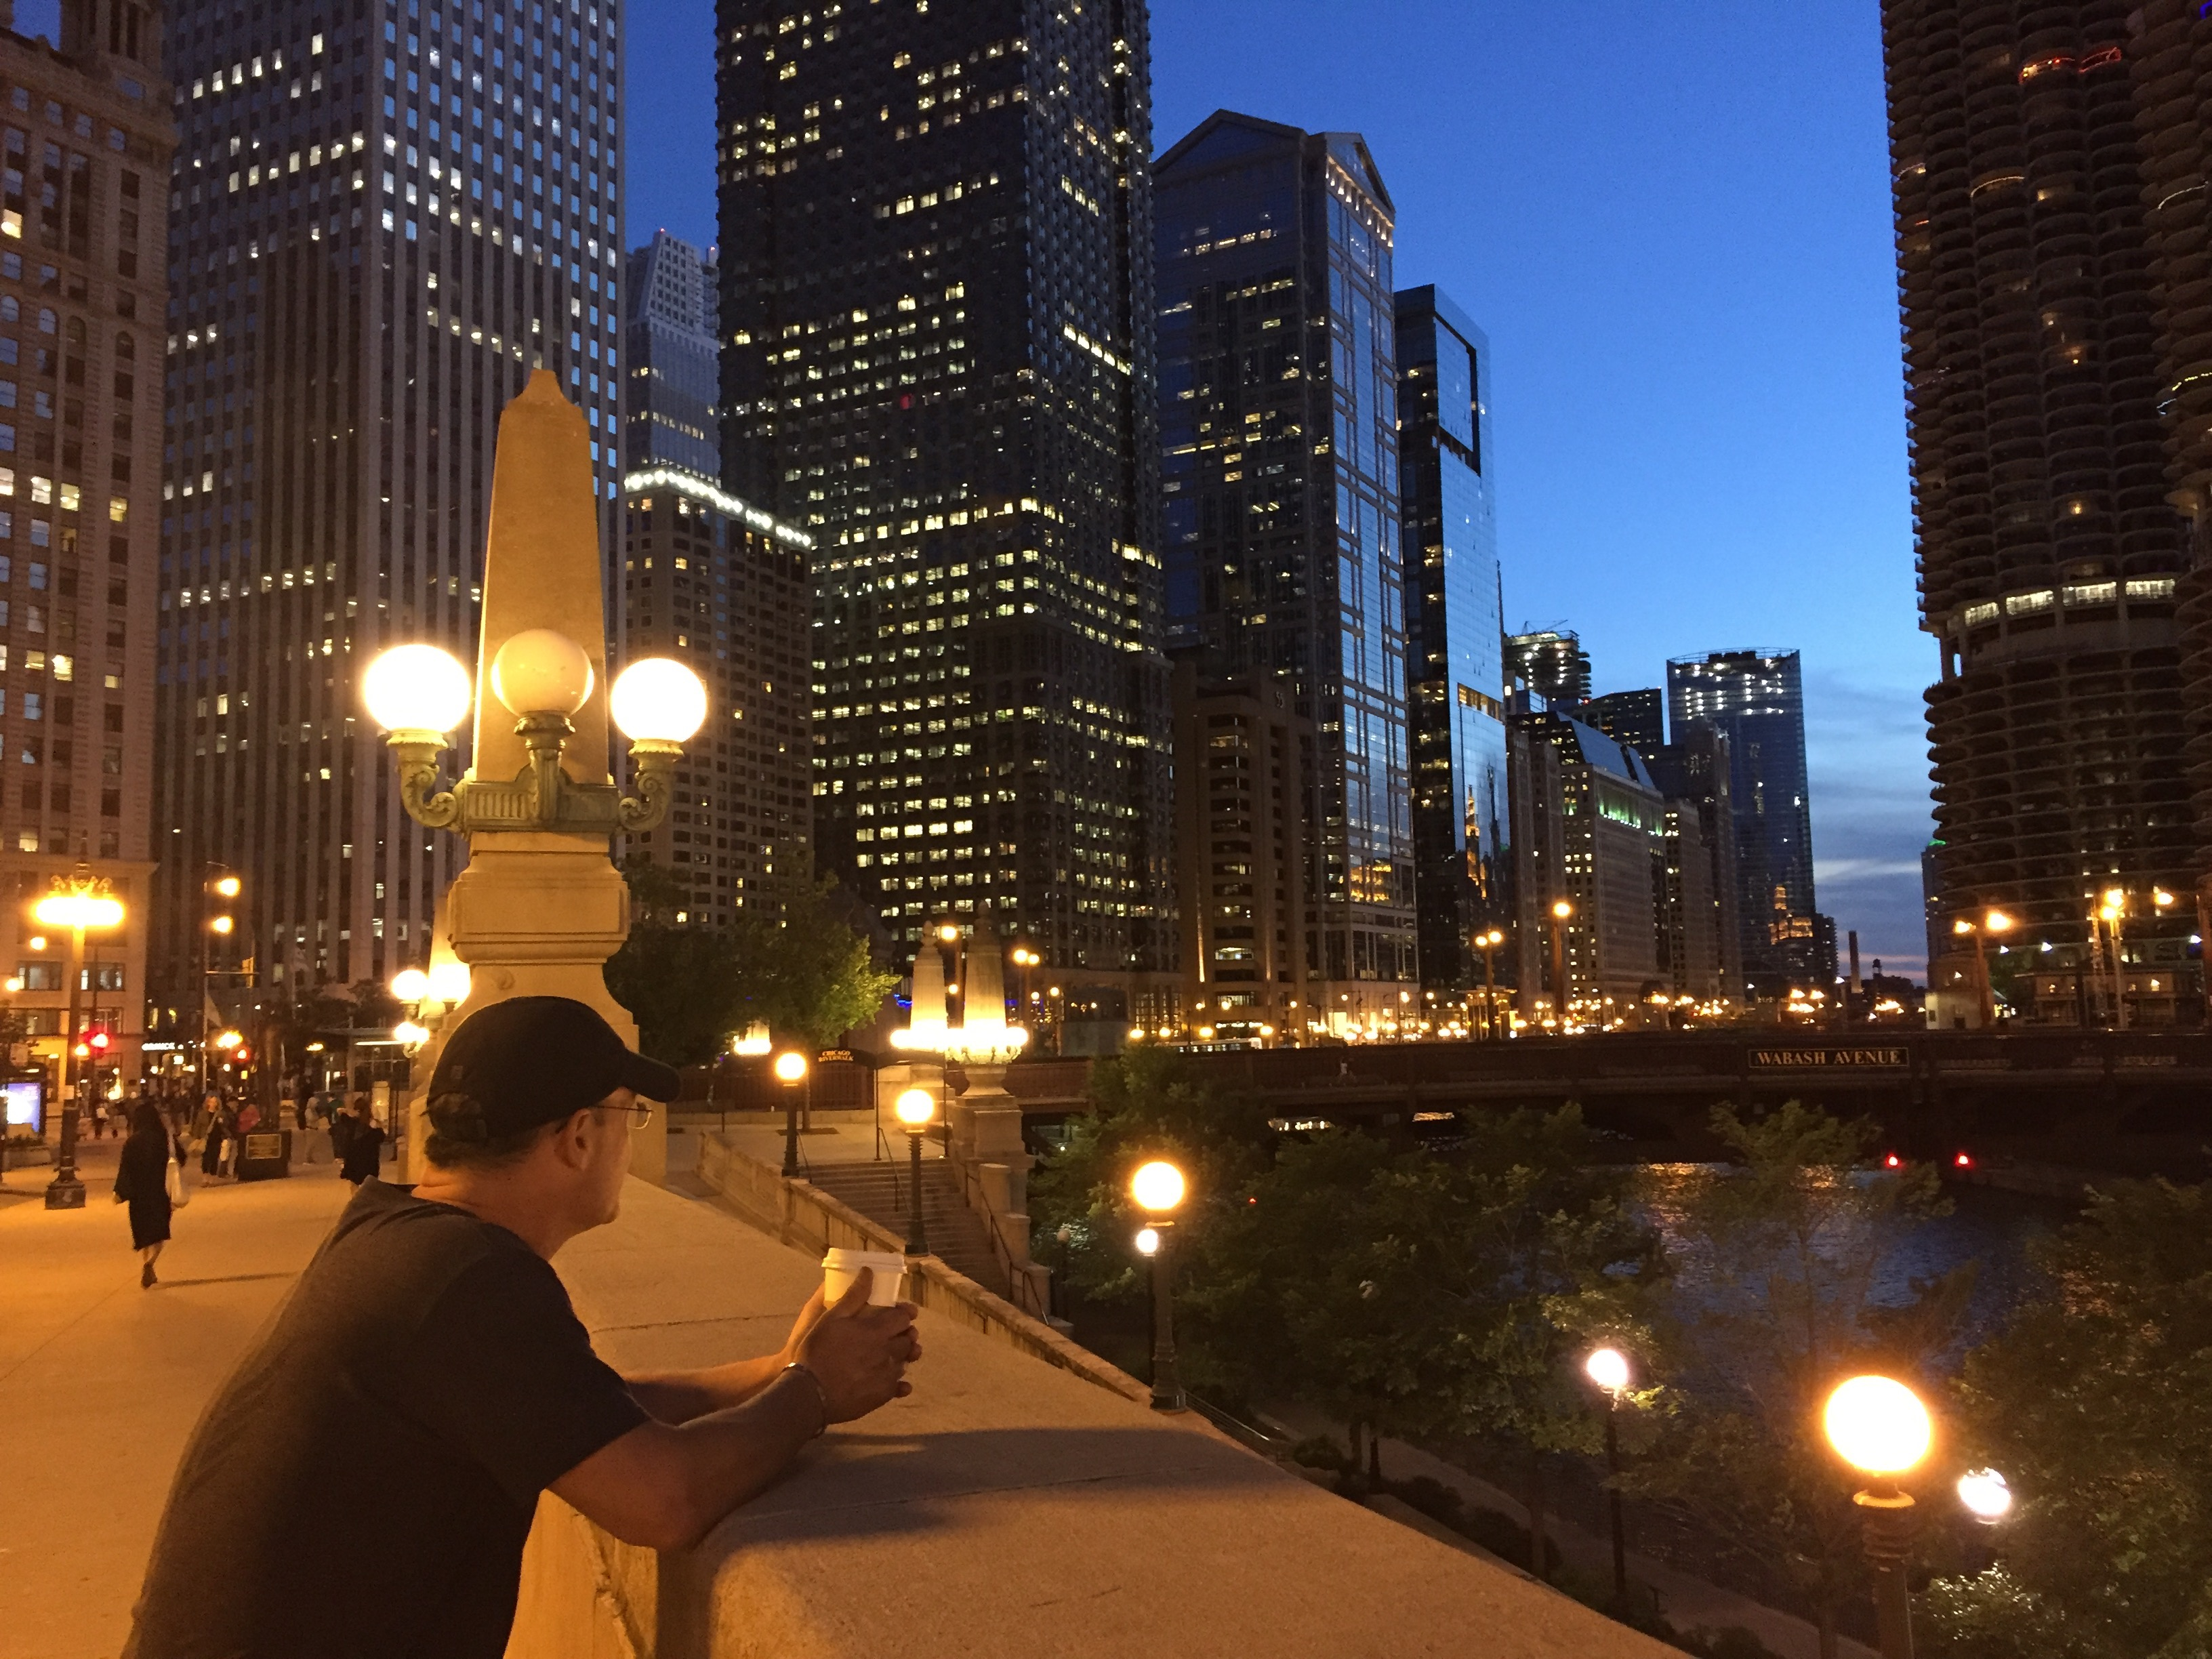 Chicago Was Pretty Cool